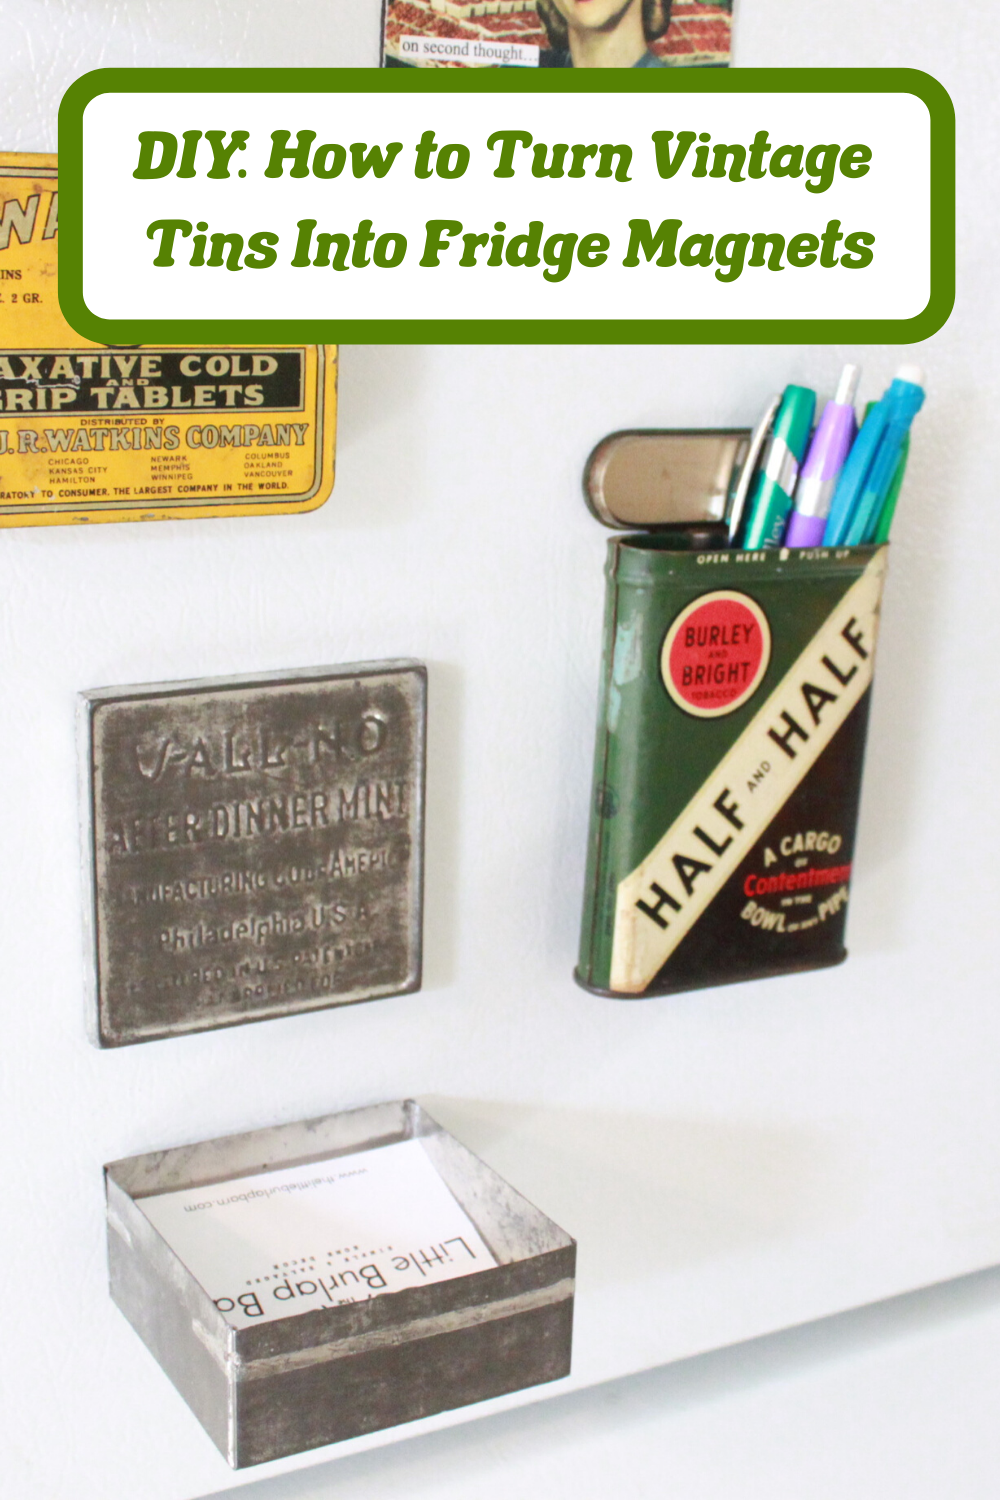 An easy DIY for upcycling small vintage tins into fridge magnets, including a few unique variations to make your exterior fridge more functional! #VintageHome #VintageDecor #FarmhouseDecor #FarmhouseKitchen #FarmhouseStyle #Refrigerator #Recycle #Upcycle